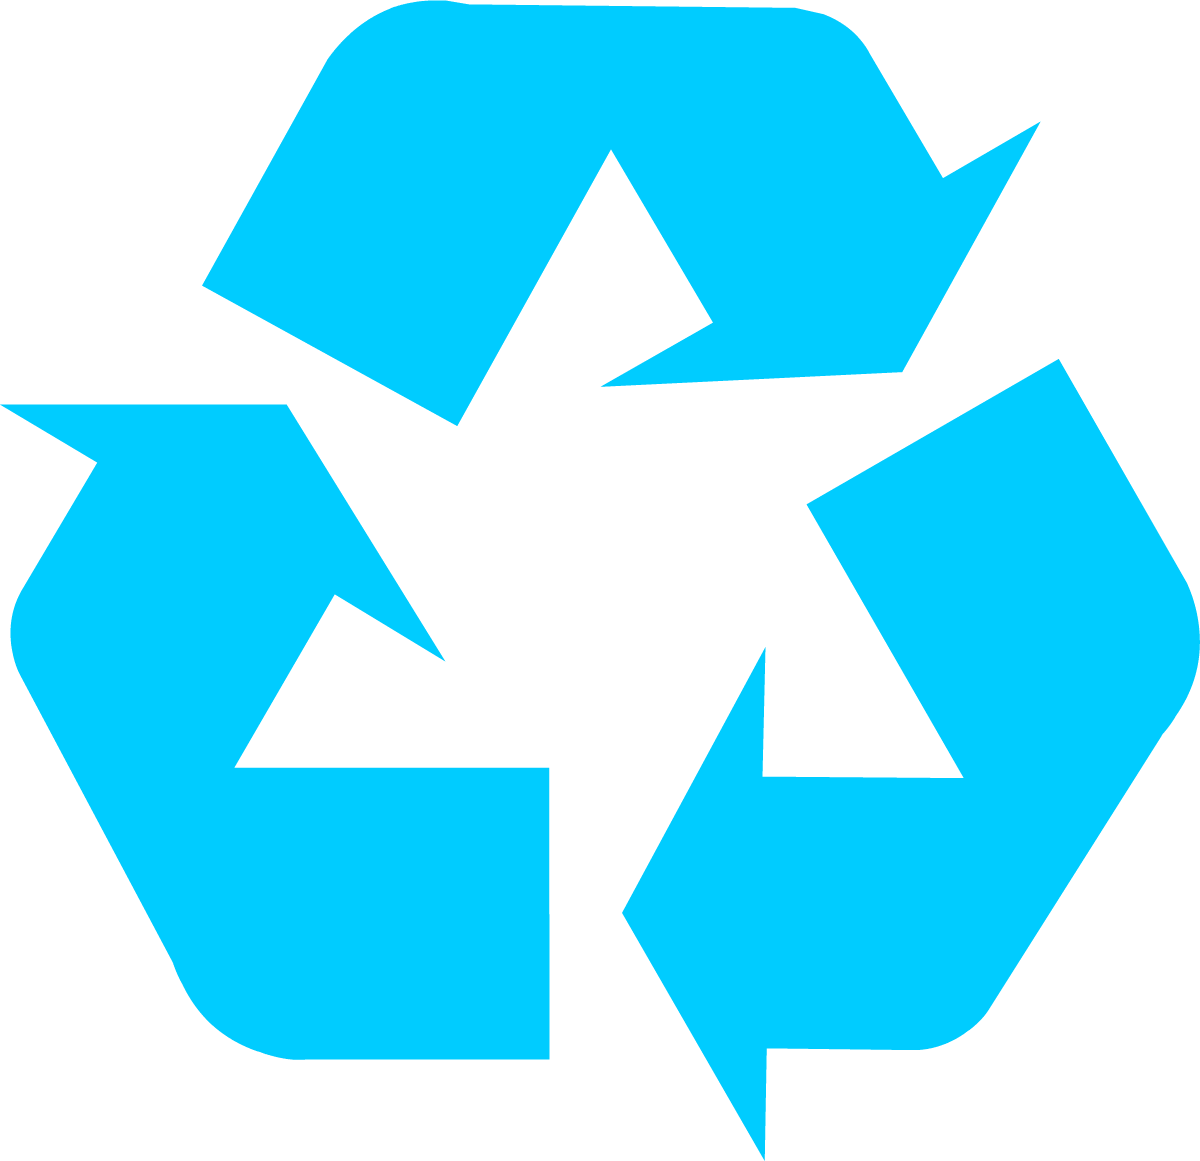 Clipart water bin. Download recycling symbol the